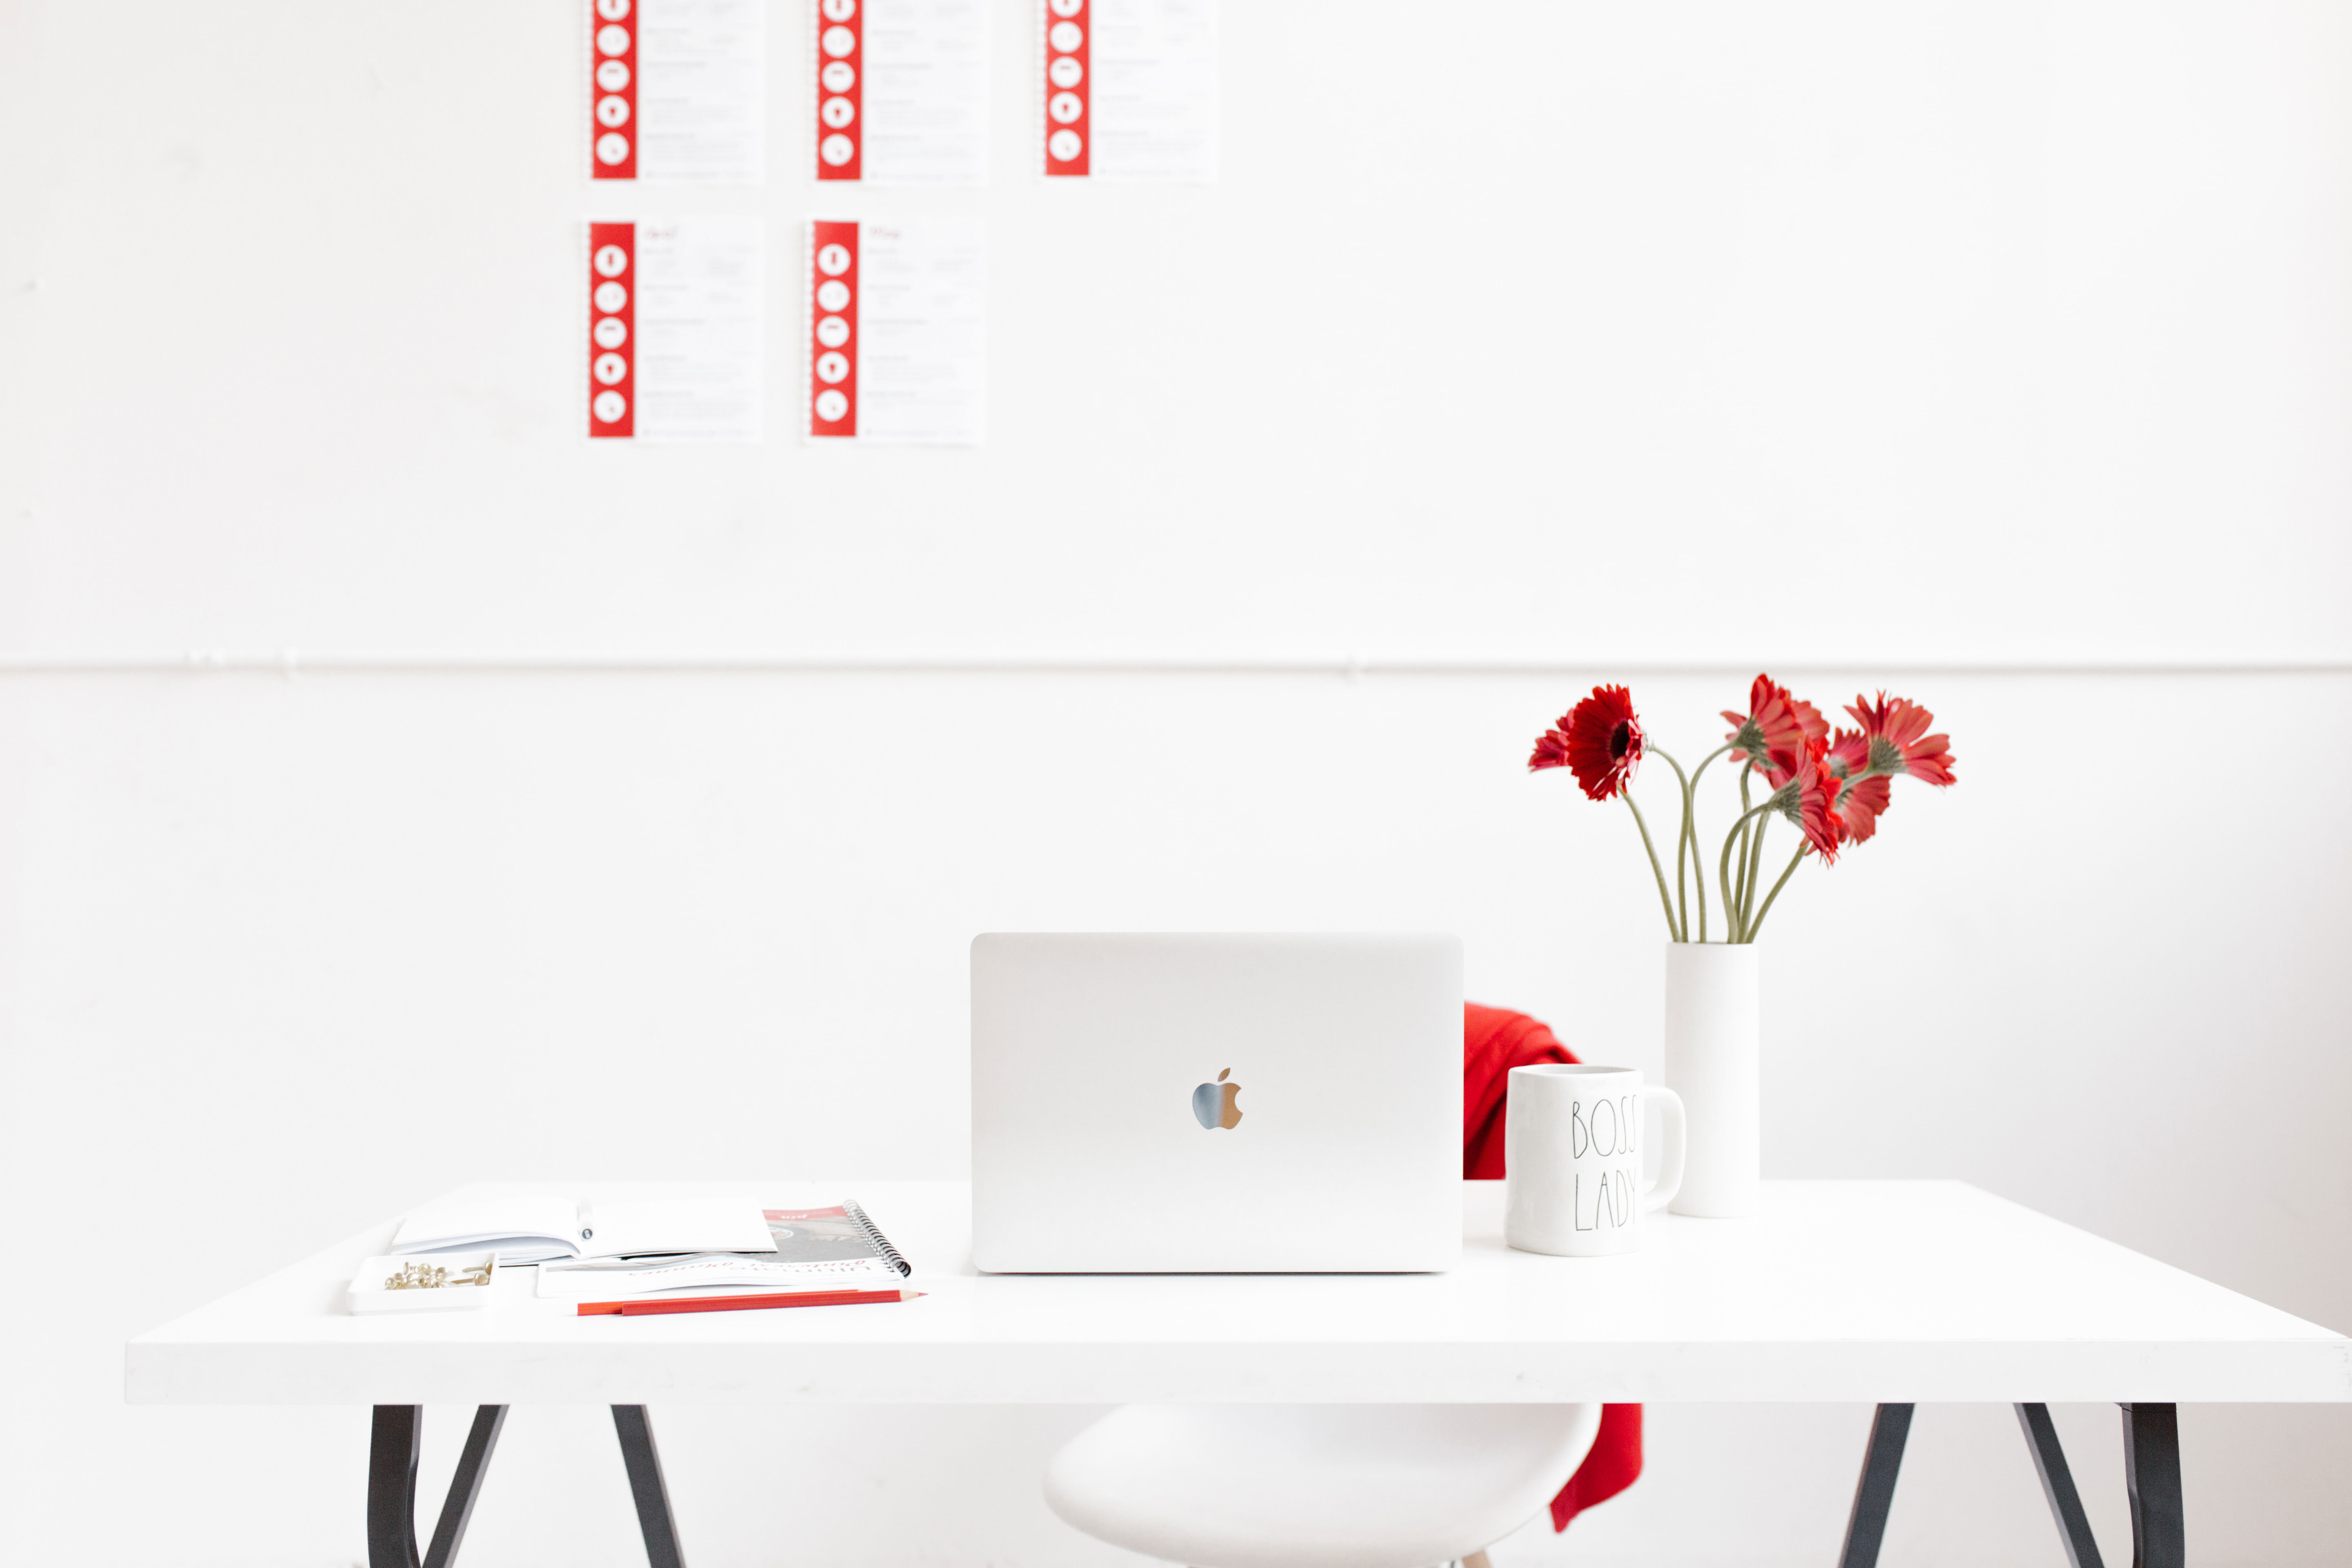 minimalist red and white workspace with planner worksheets taped to wall.